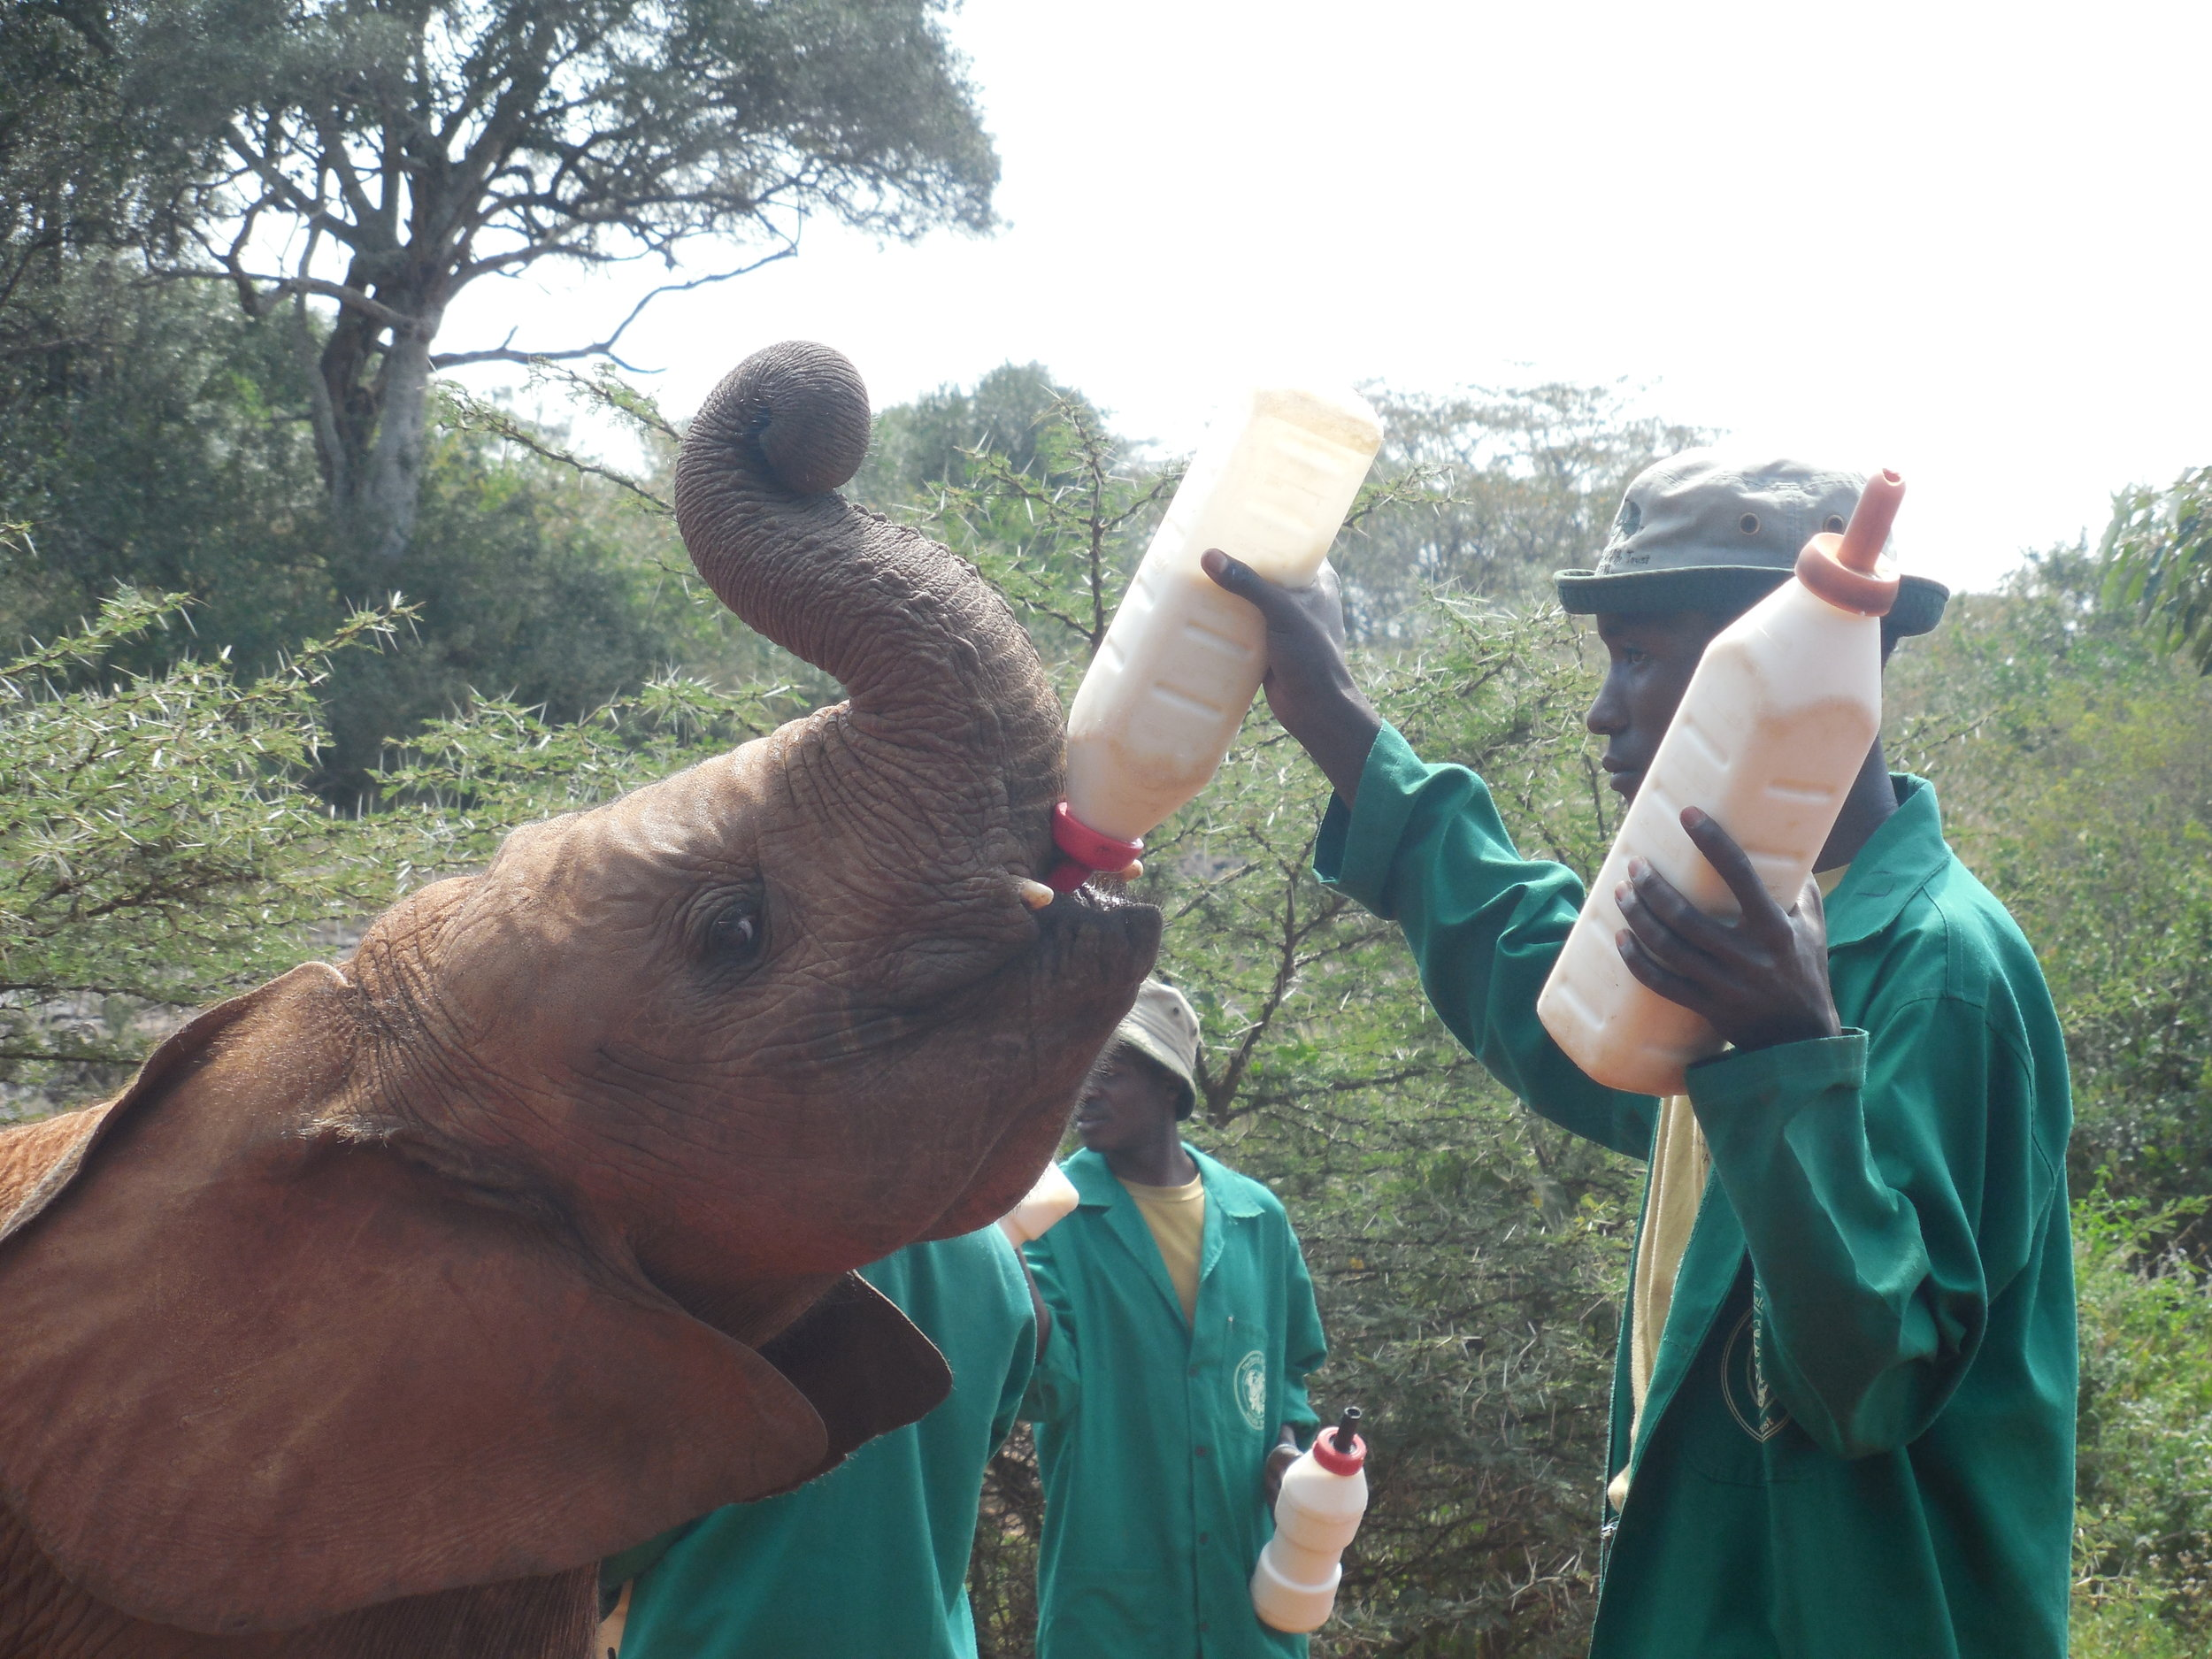 David Sheldrick Elephant Orphanage ©Flyga Twiga LLC